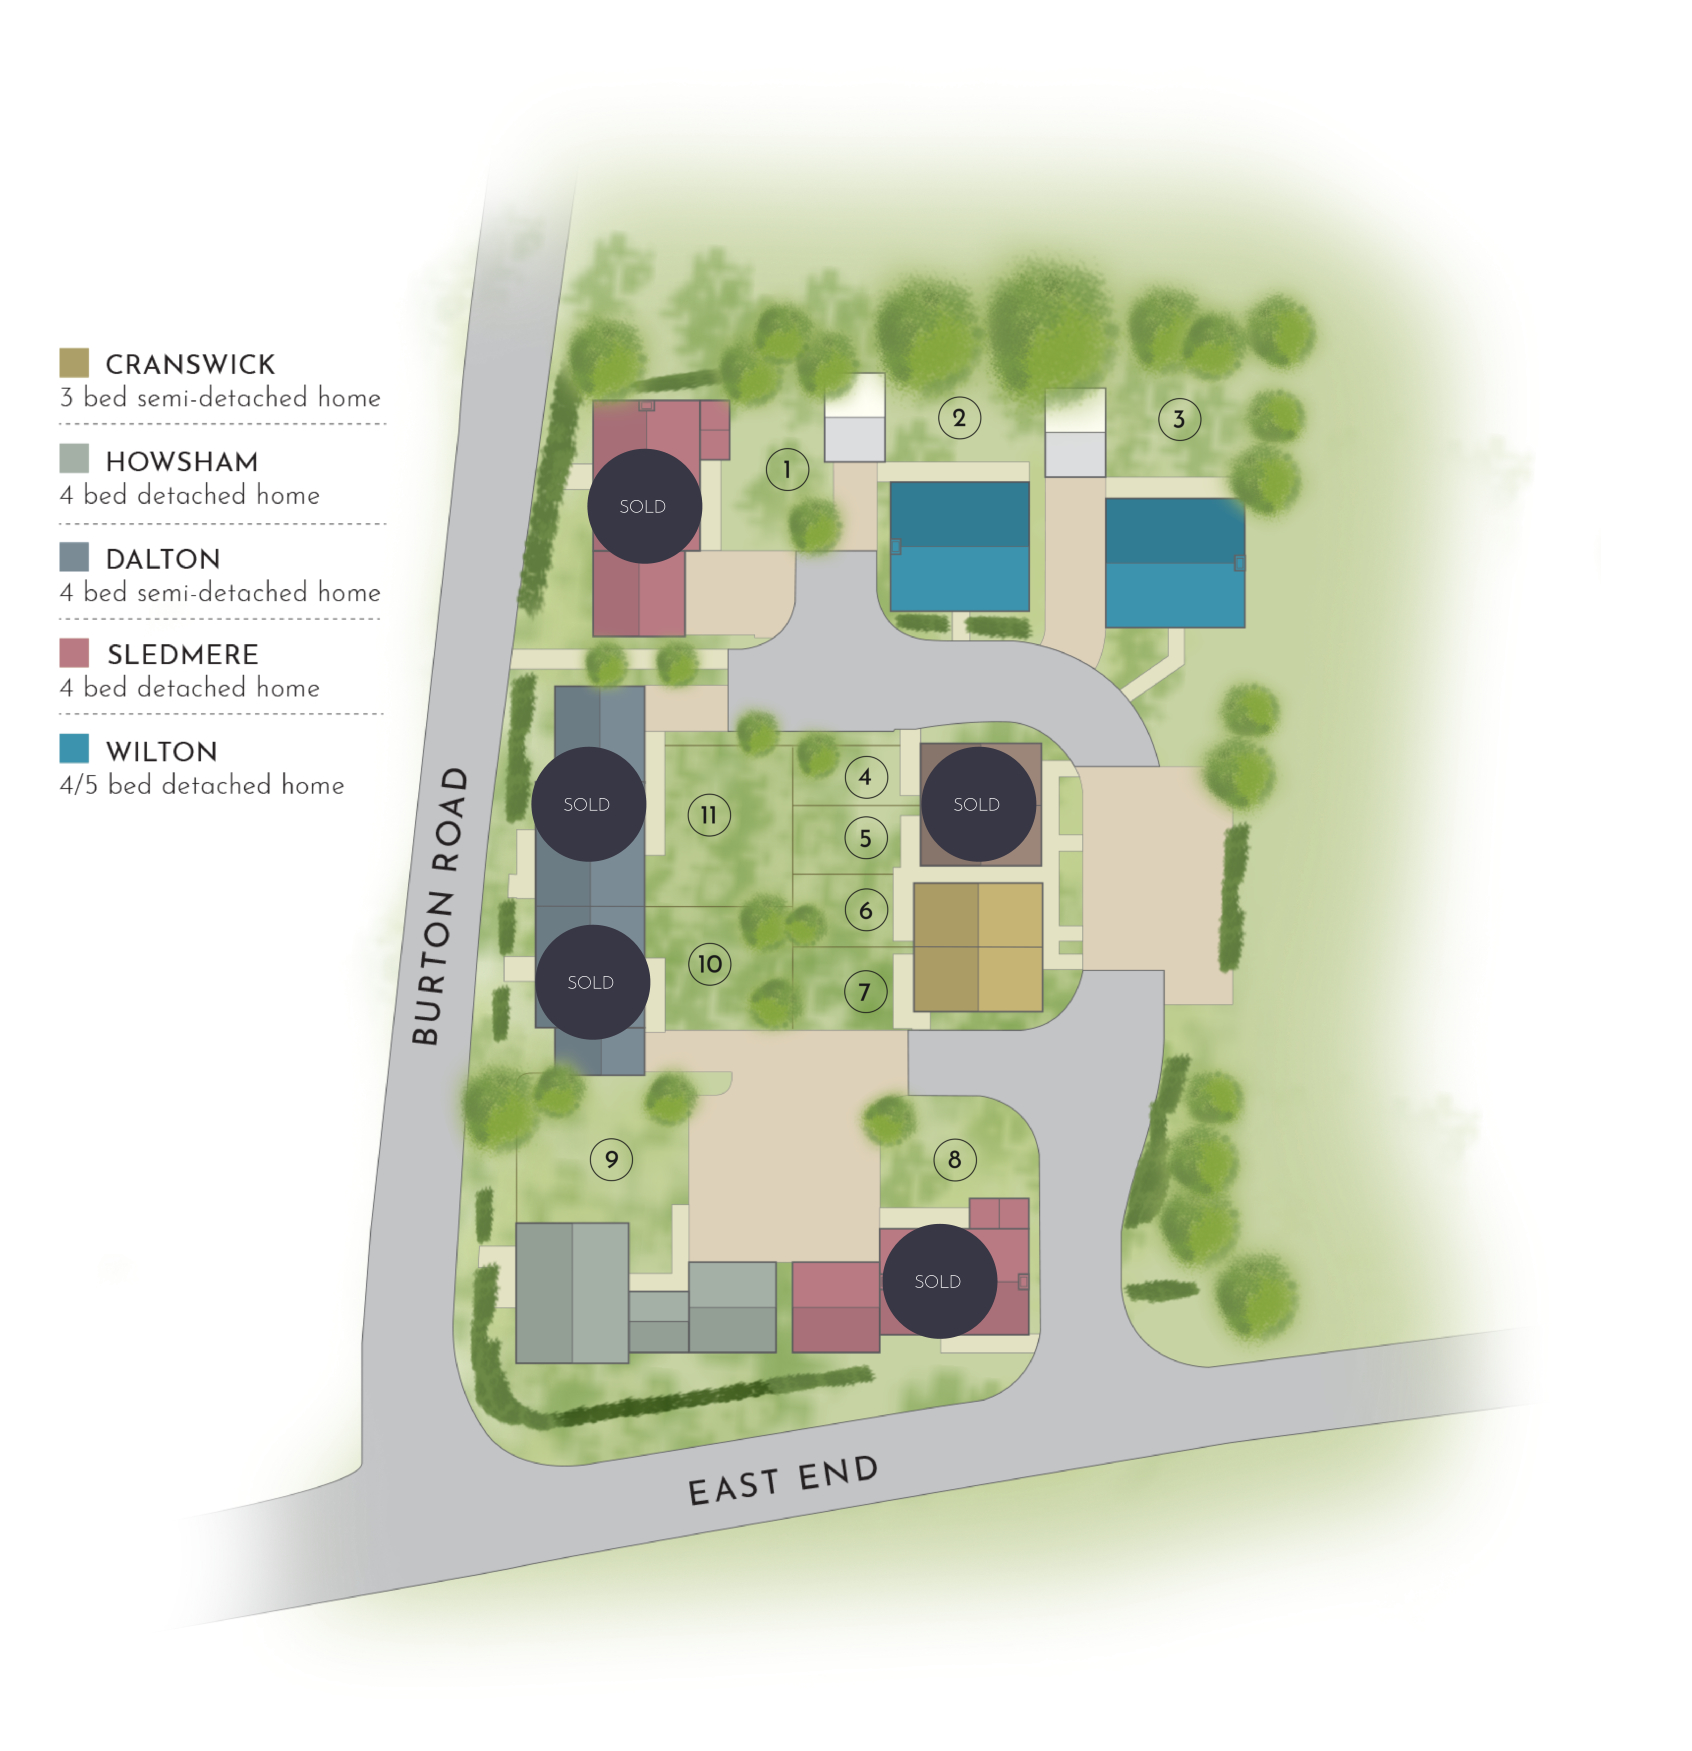 Woldgate Pastures - Site Plan with Reservations